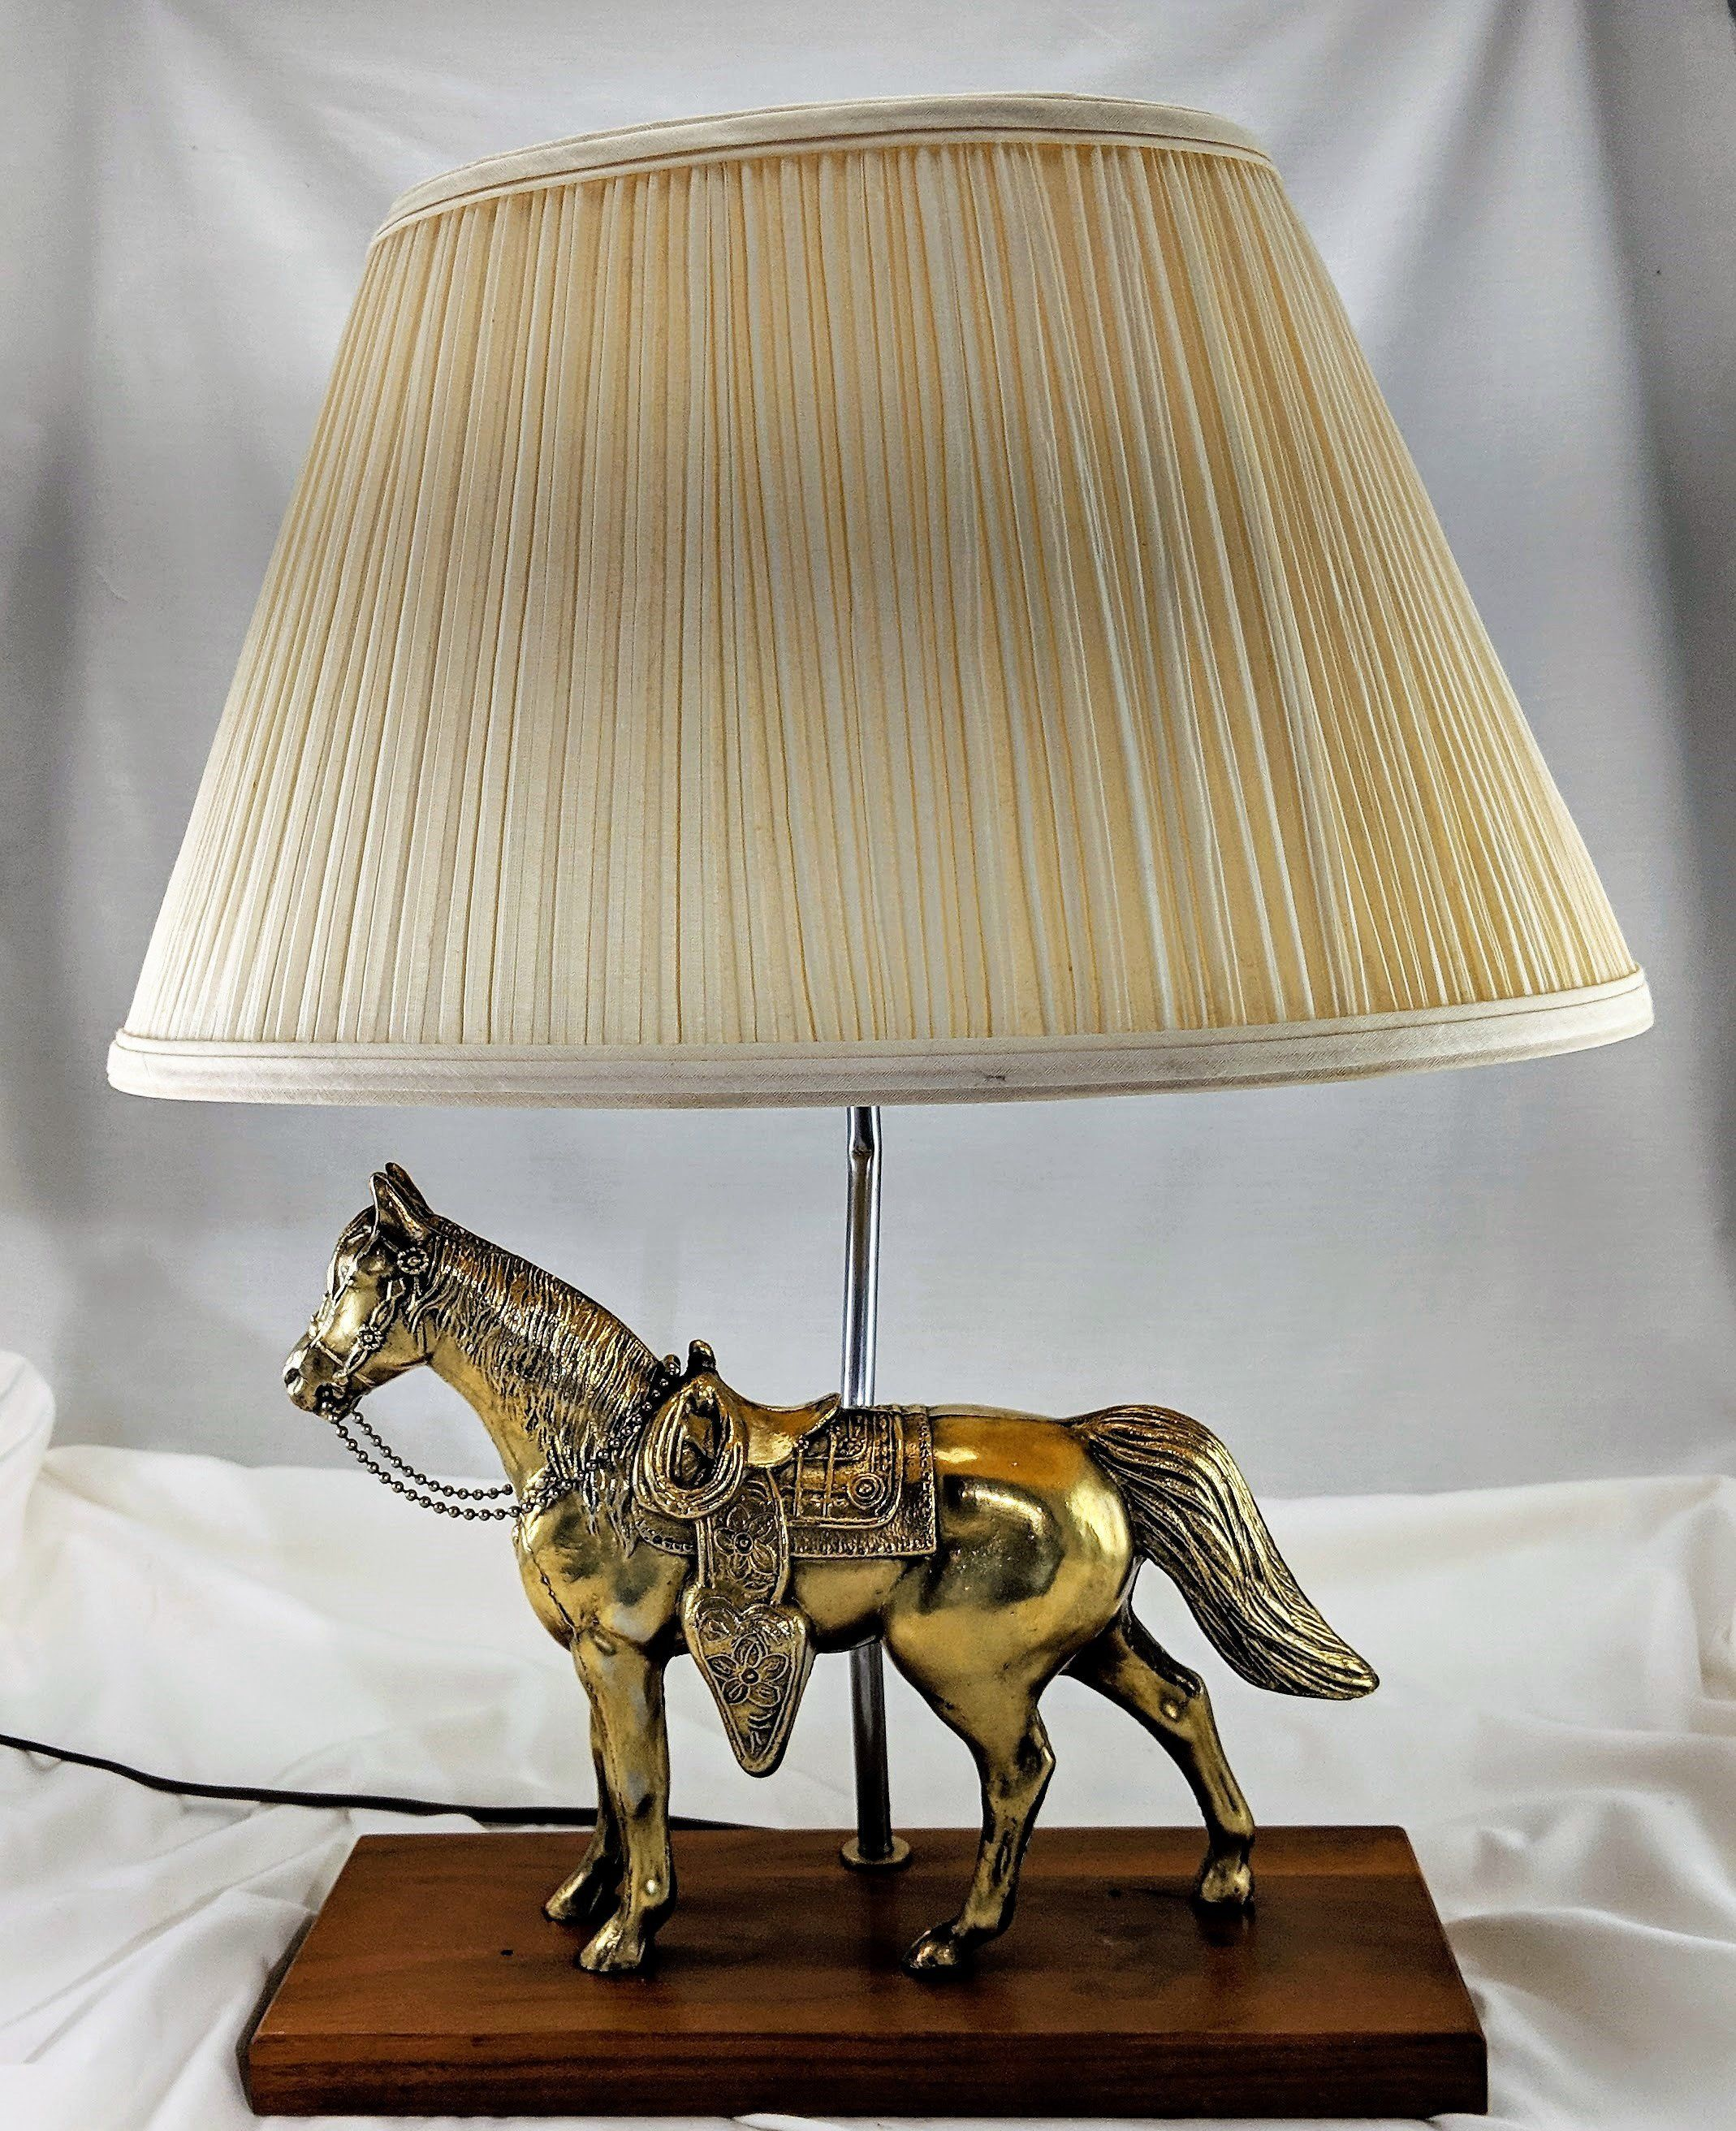 Vintage Brass Horse Electric Table Lamp Restored Western Etsy Horse Lamp Lamp Vintage Brass